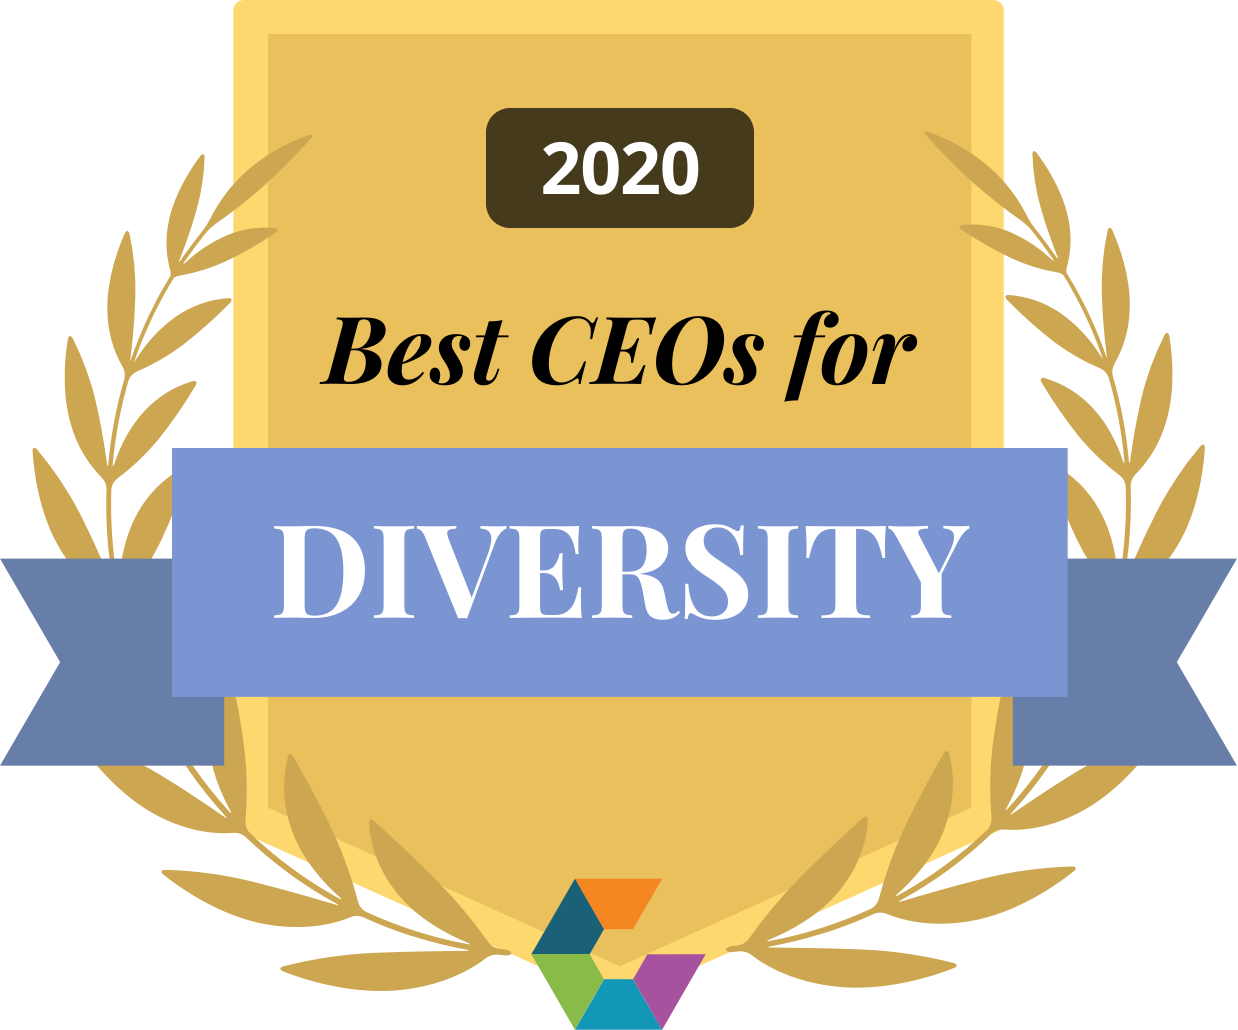 Comparably Best CEOs for Diversity 2020